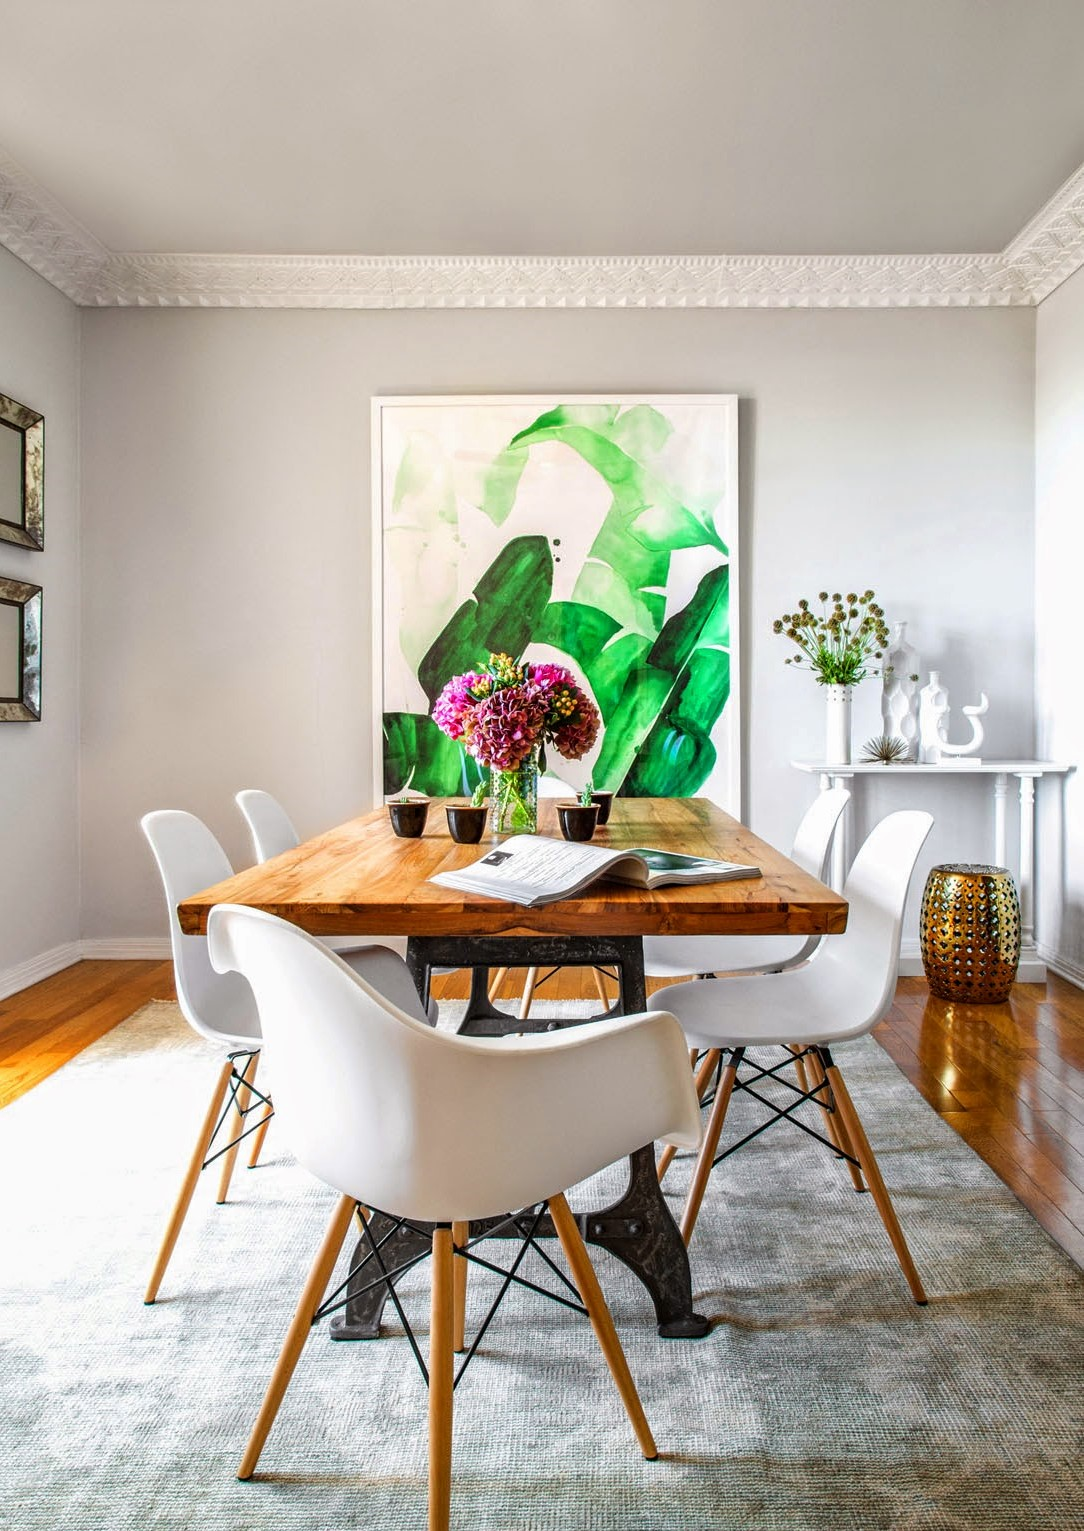 dining room Astonishing Ideas Of How To Place Your Table In The Dining Room 81 Astonishing Ideas Of How To Place Your Table In The Dining Room 1